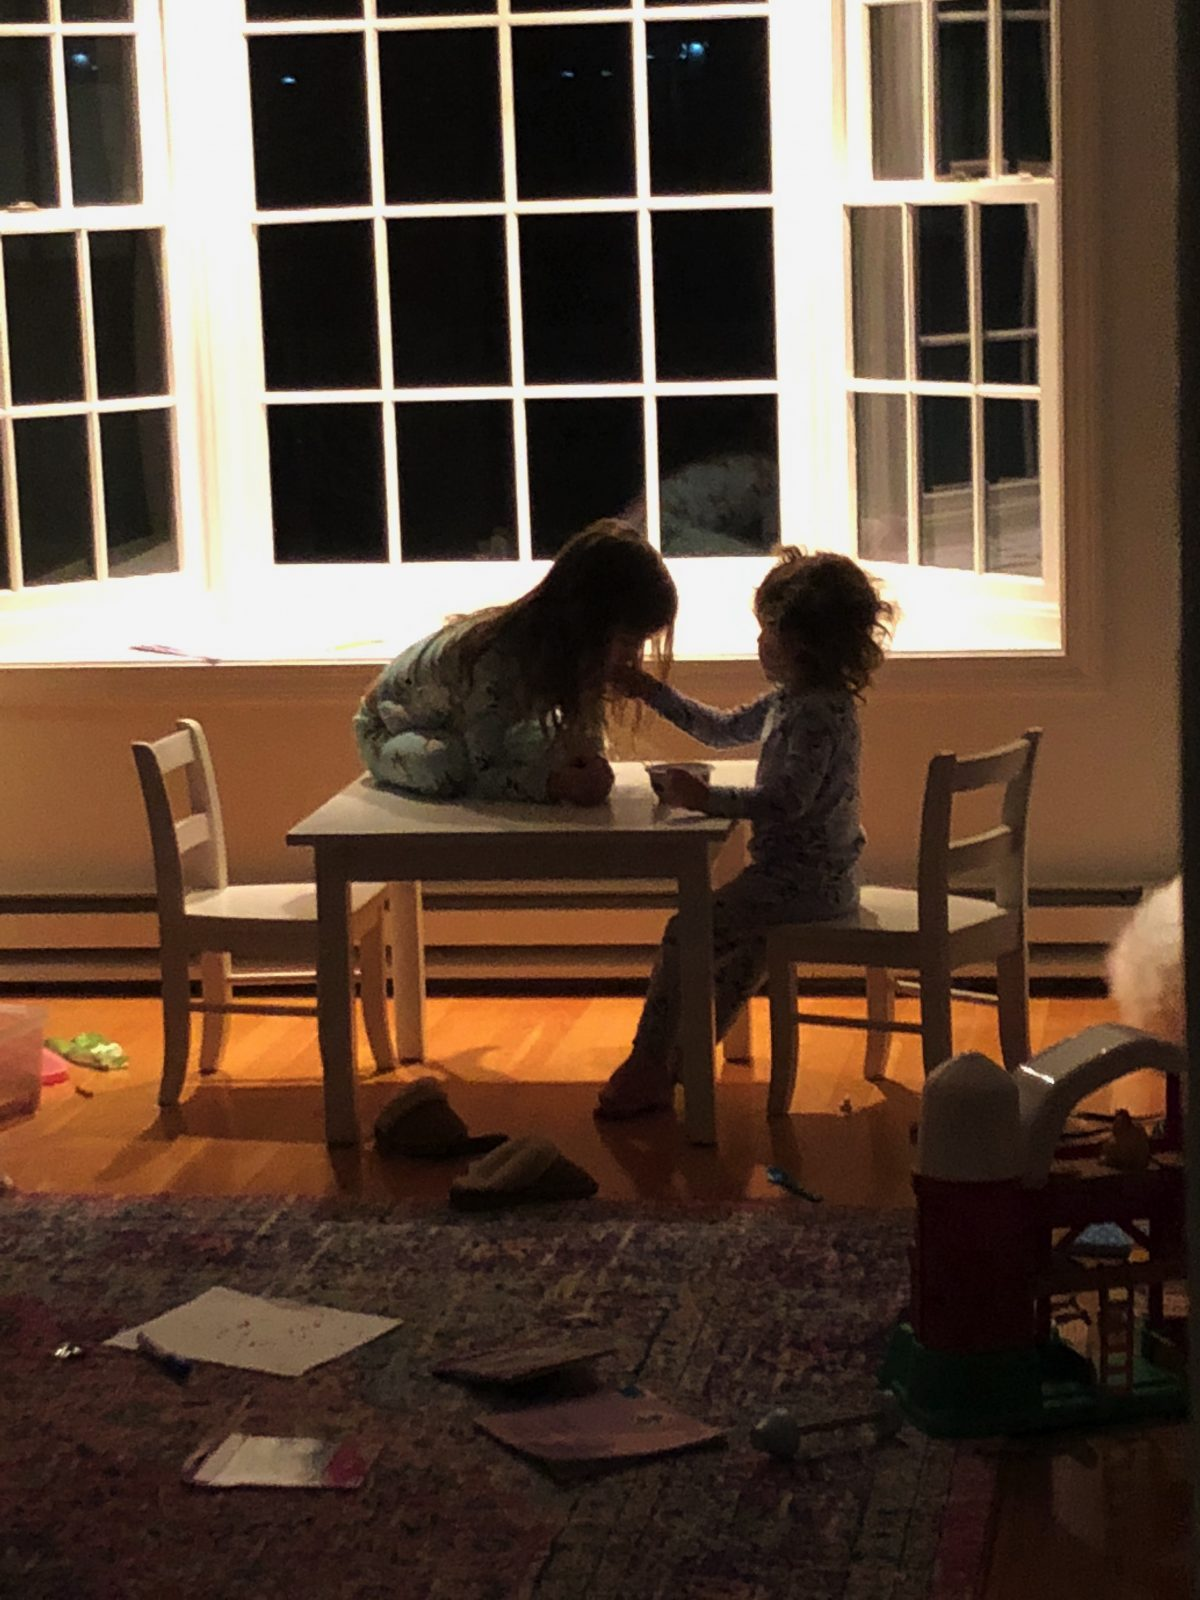 Dark photo of little girl sitting on top of table while sister feeds her food in a messy room